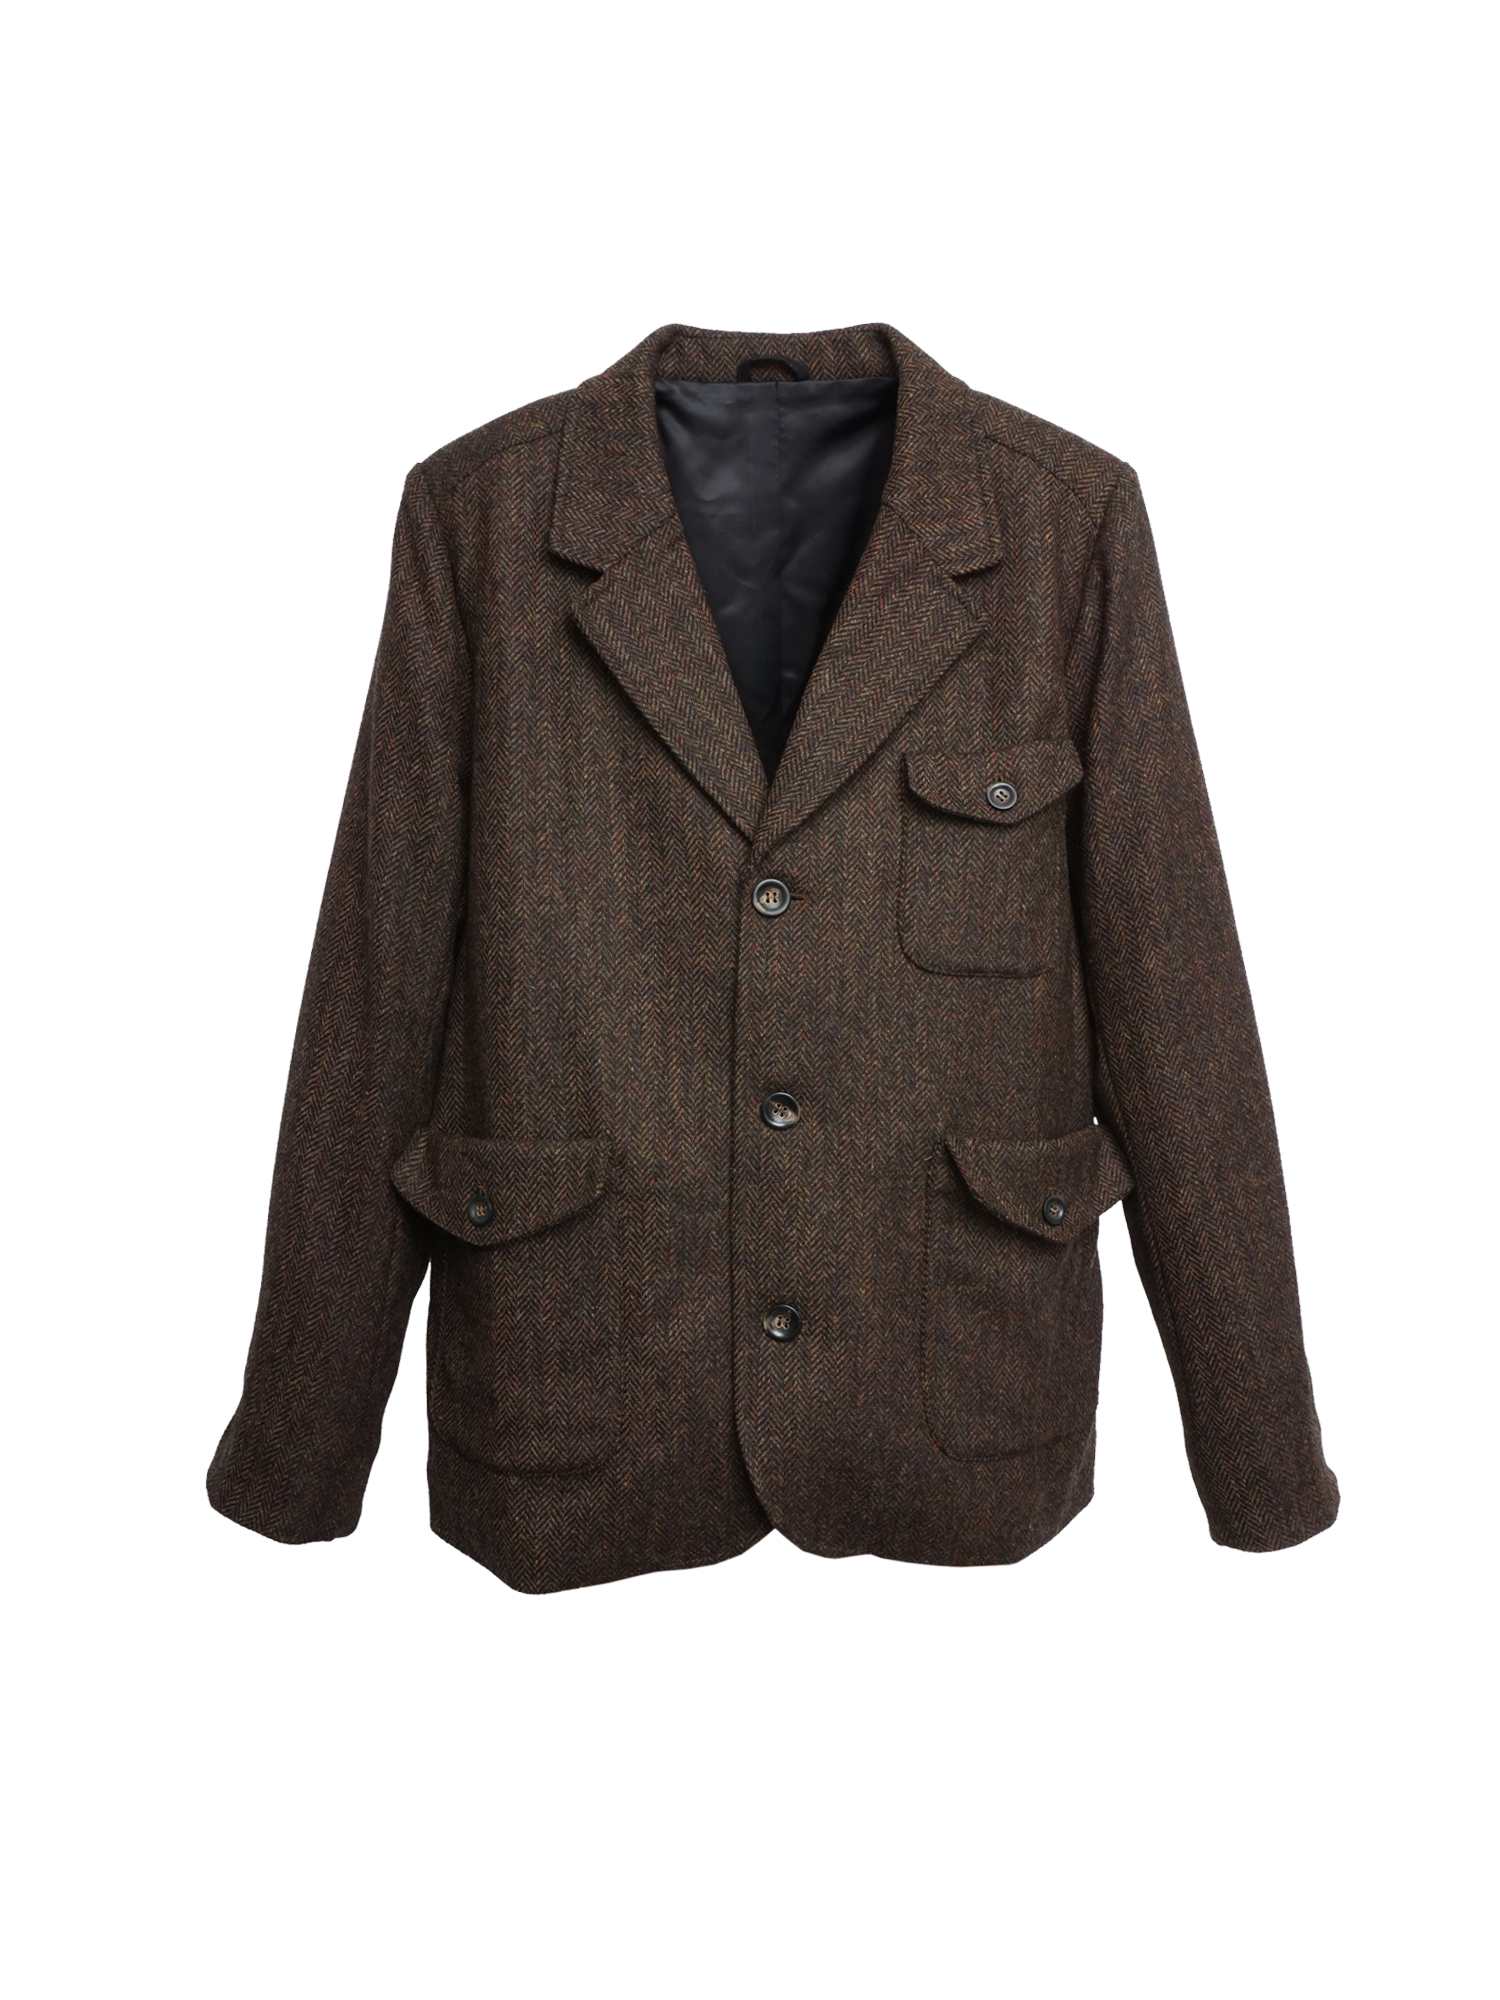 K7104 SATURN Mens Tweed Blazer